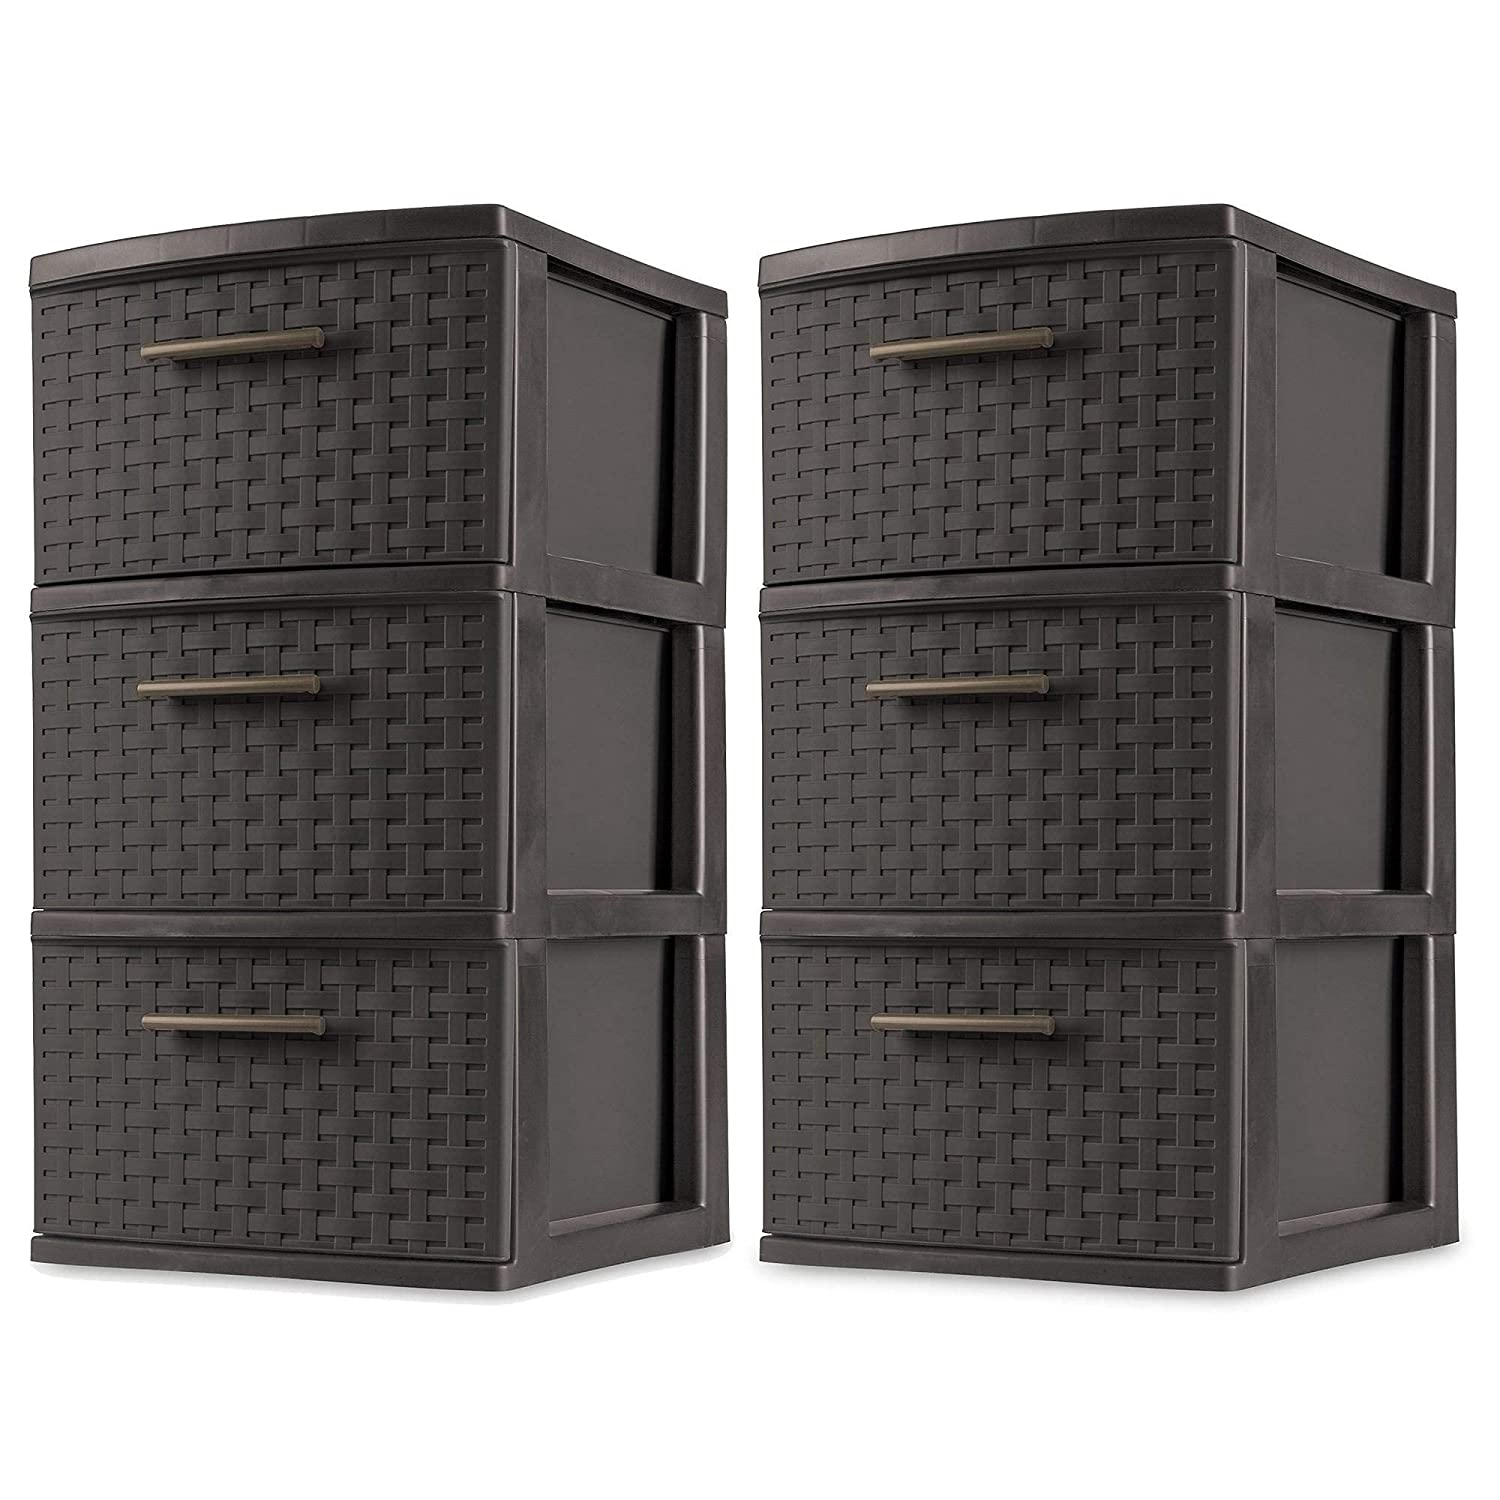 Sterilite 3 Drawer Wicker Weave Decorative Storage Tower, Espresso (2 Pack)